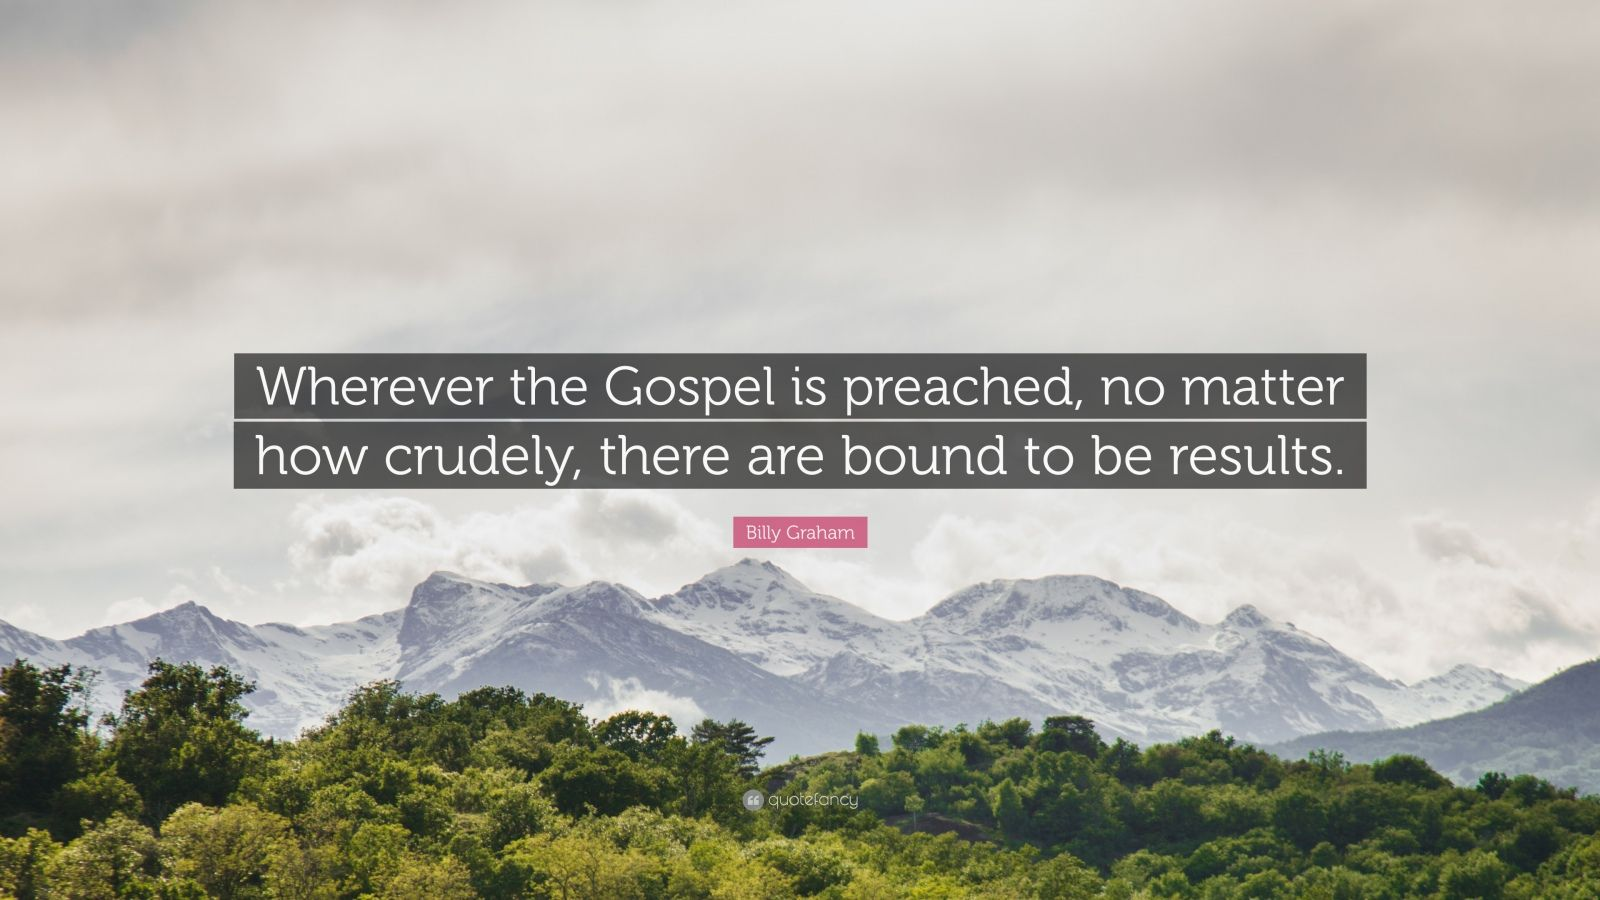 """Billy Graham Quote: """"Wherever the Gospel is preached, no matter how crudely, there are bound to be results."""""""